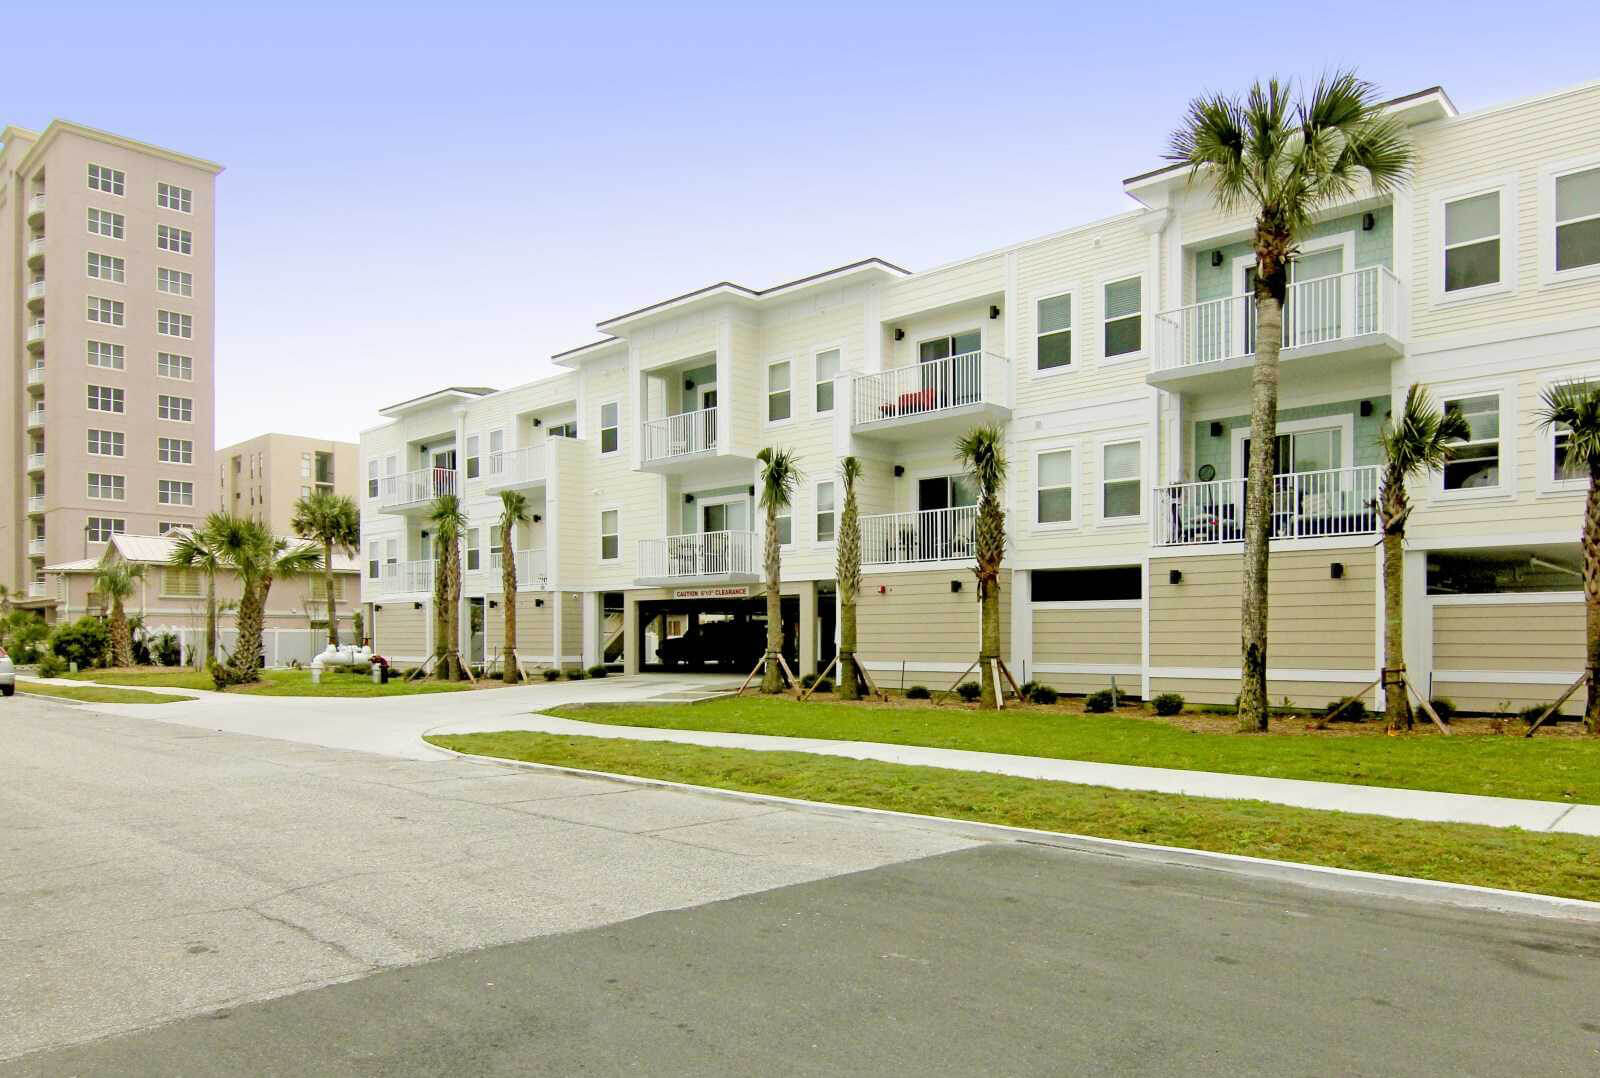 Jacksonville Beach-Surfside Apartments